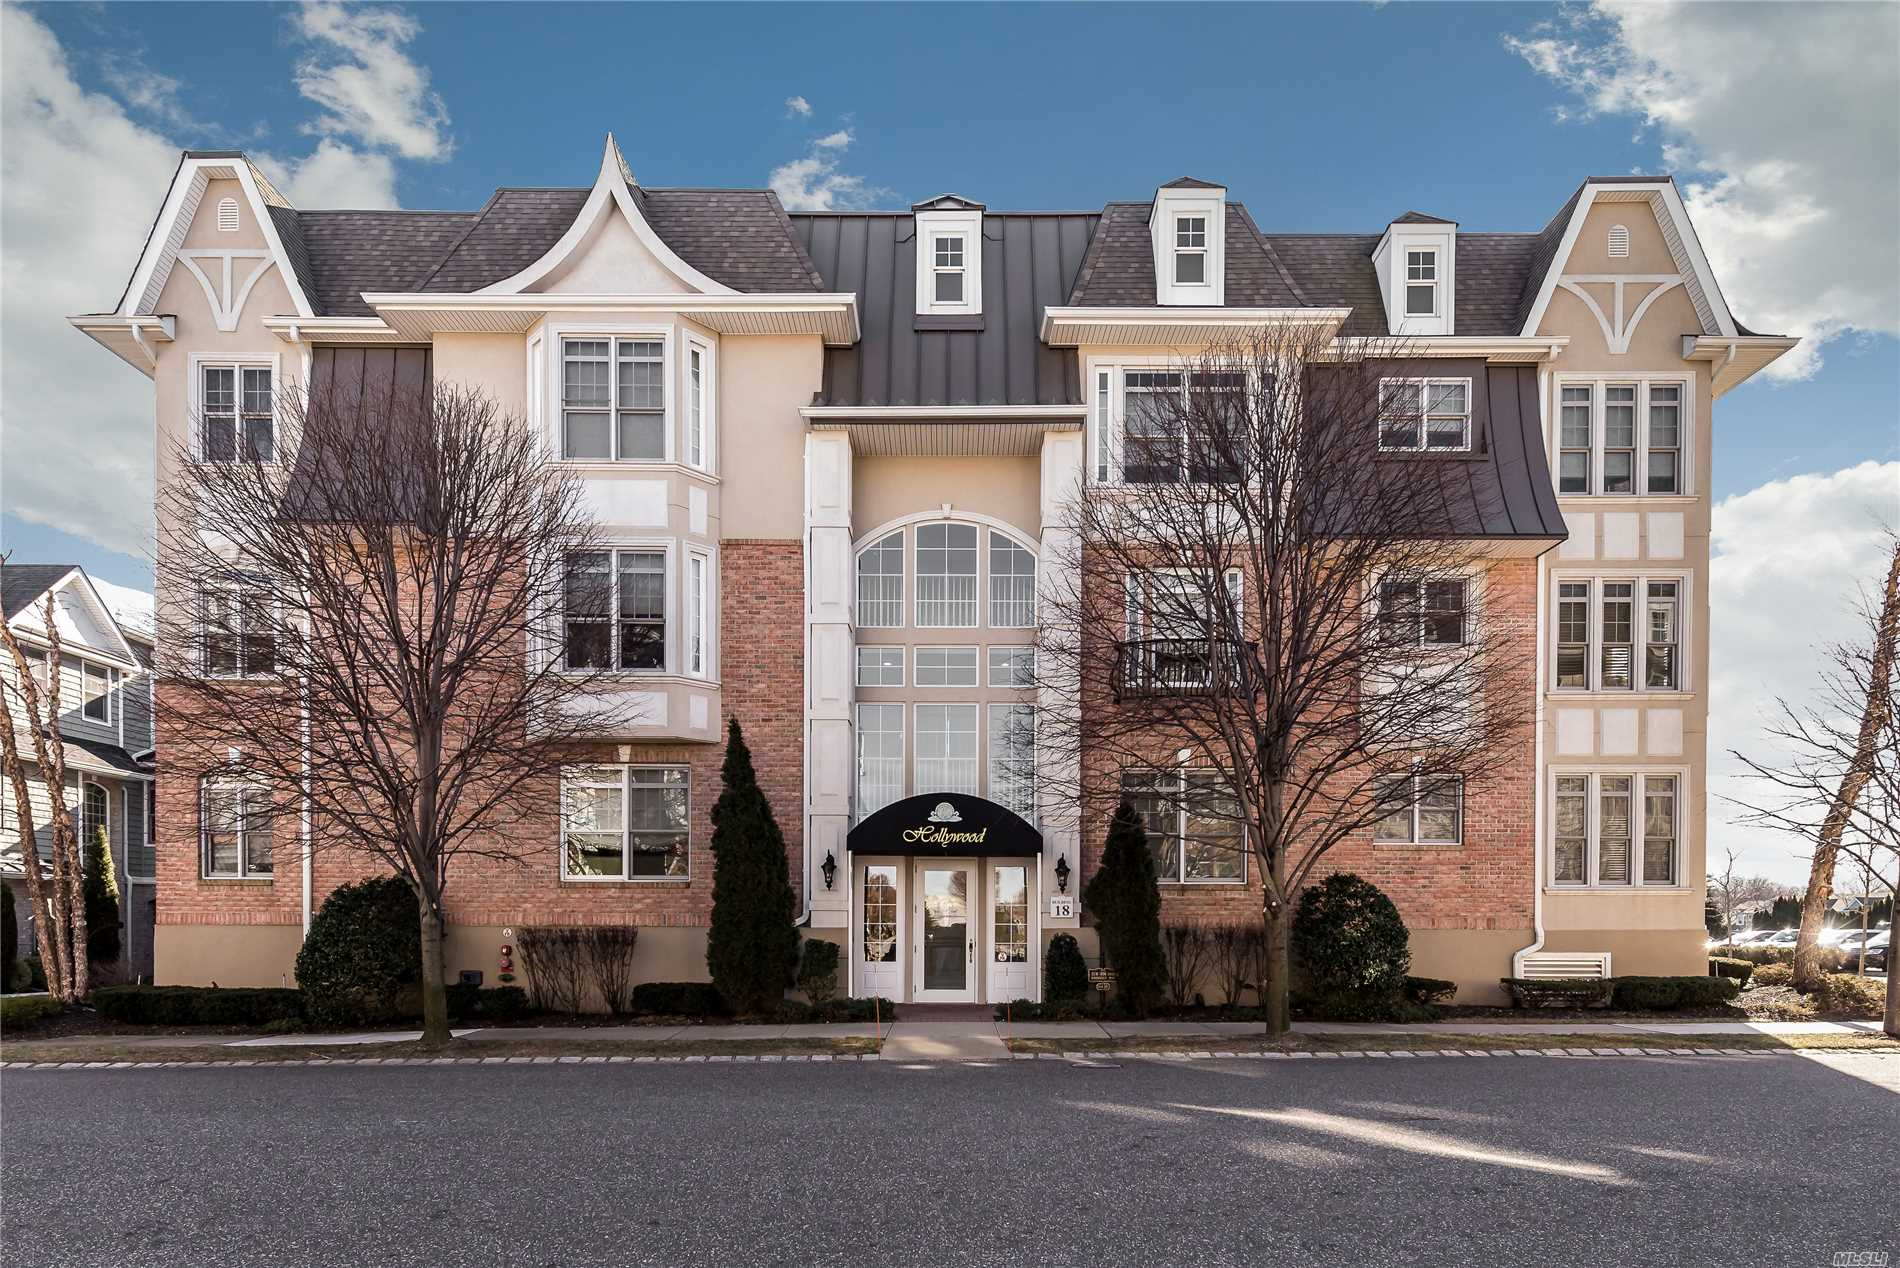 This Diamond 2 Bd/2Bth Essex Unit Has The Most Magnificent Resort-Like Views Of The Pool, Pond & Fountain! This 3rd Floor Unit Is Cheerfully Filled With Sunshine And Has Unobstructed Views In Every Direction! Impeccably Designed And Appointed, This Home Boasts Gleaming Wood Flrs, Maple Cabinetry & Granite Tops W/Ss Appl, Spacious & Elegant Mstr Suite W/Jacuzzi Tub & Shower, Custom-Fitted Walk-In Closets, Lovely 2nd Bedrm & Full Bath W/Jack-N-Jill Doors, Lndry Rm, Terrace, Fabulous Amenities!